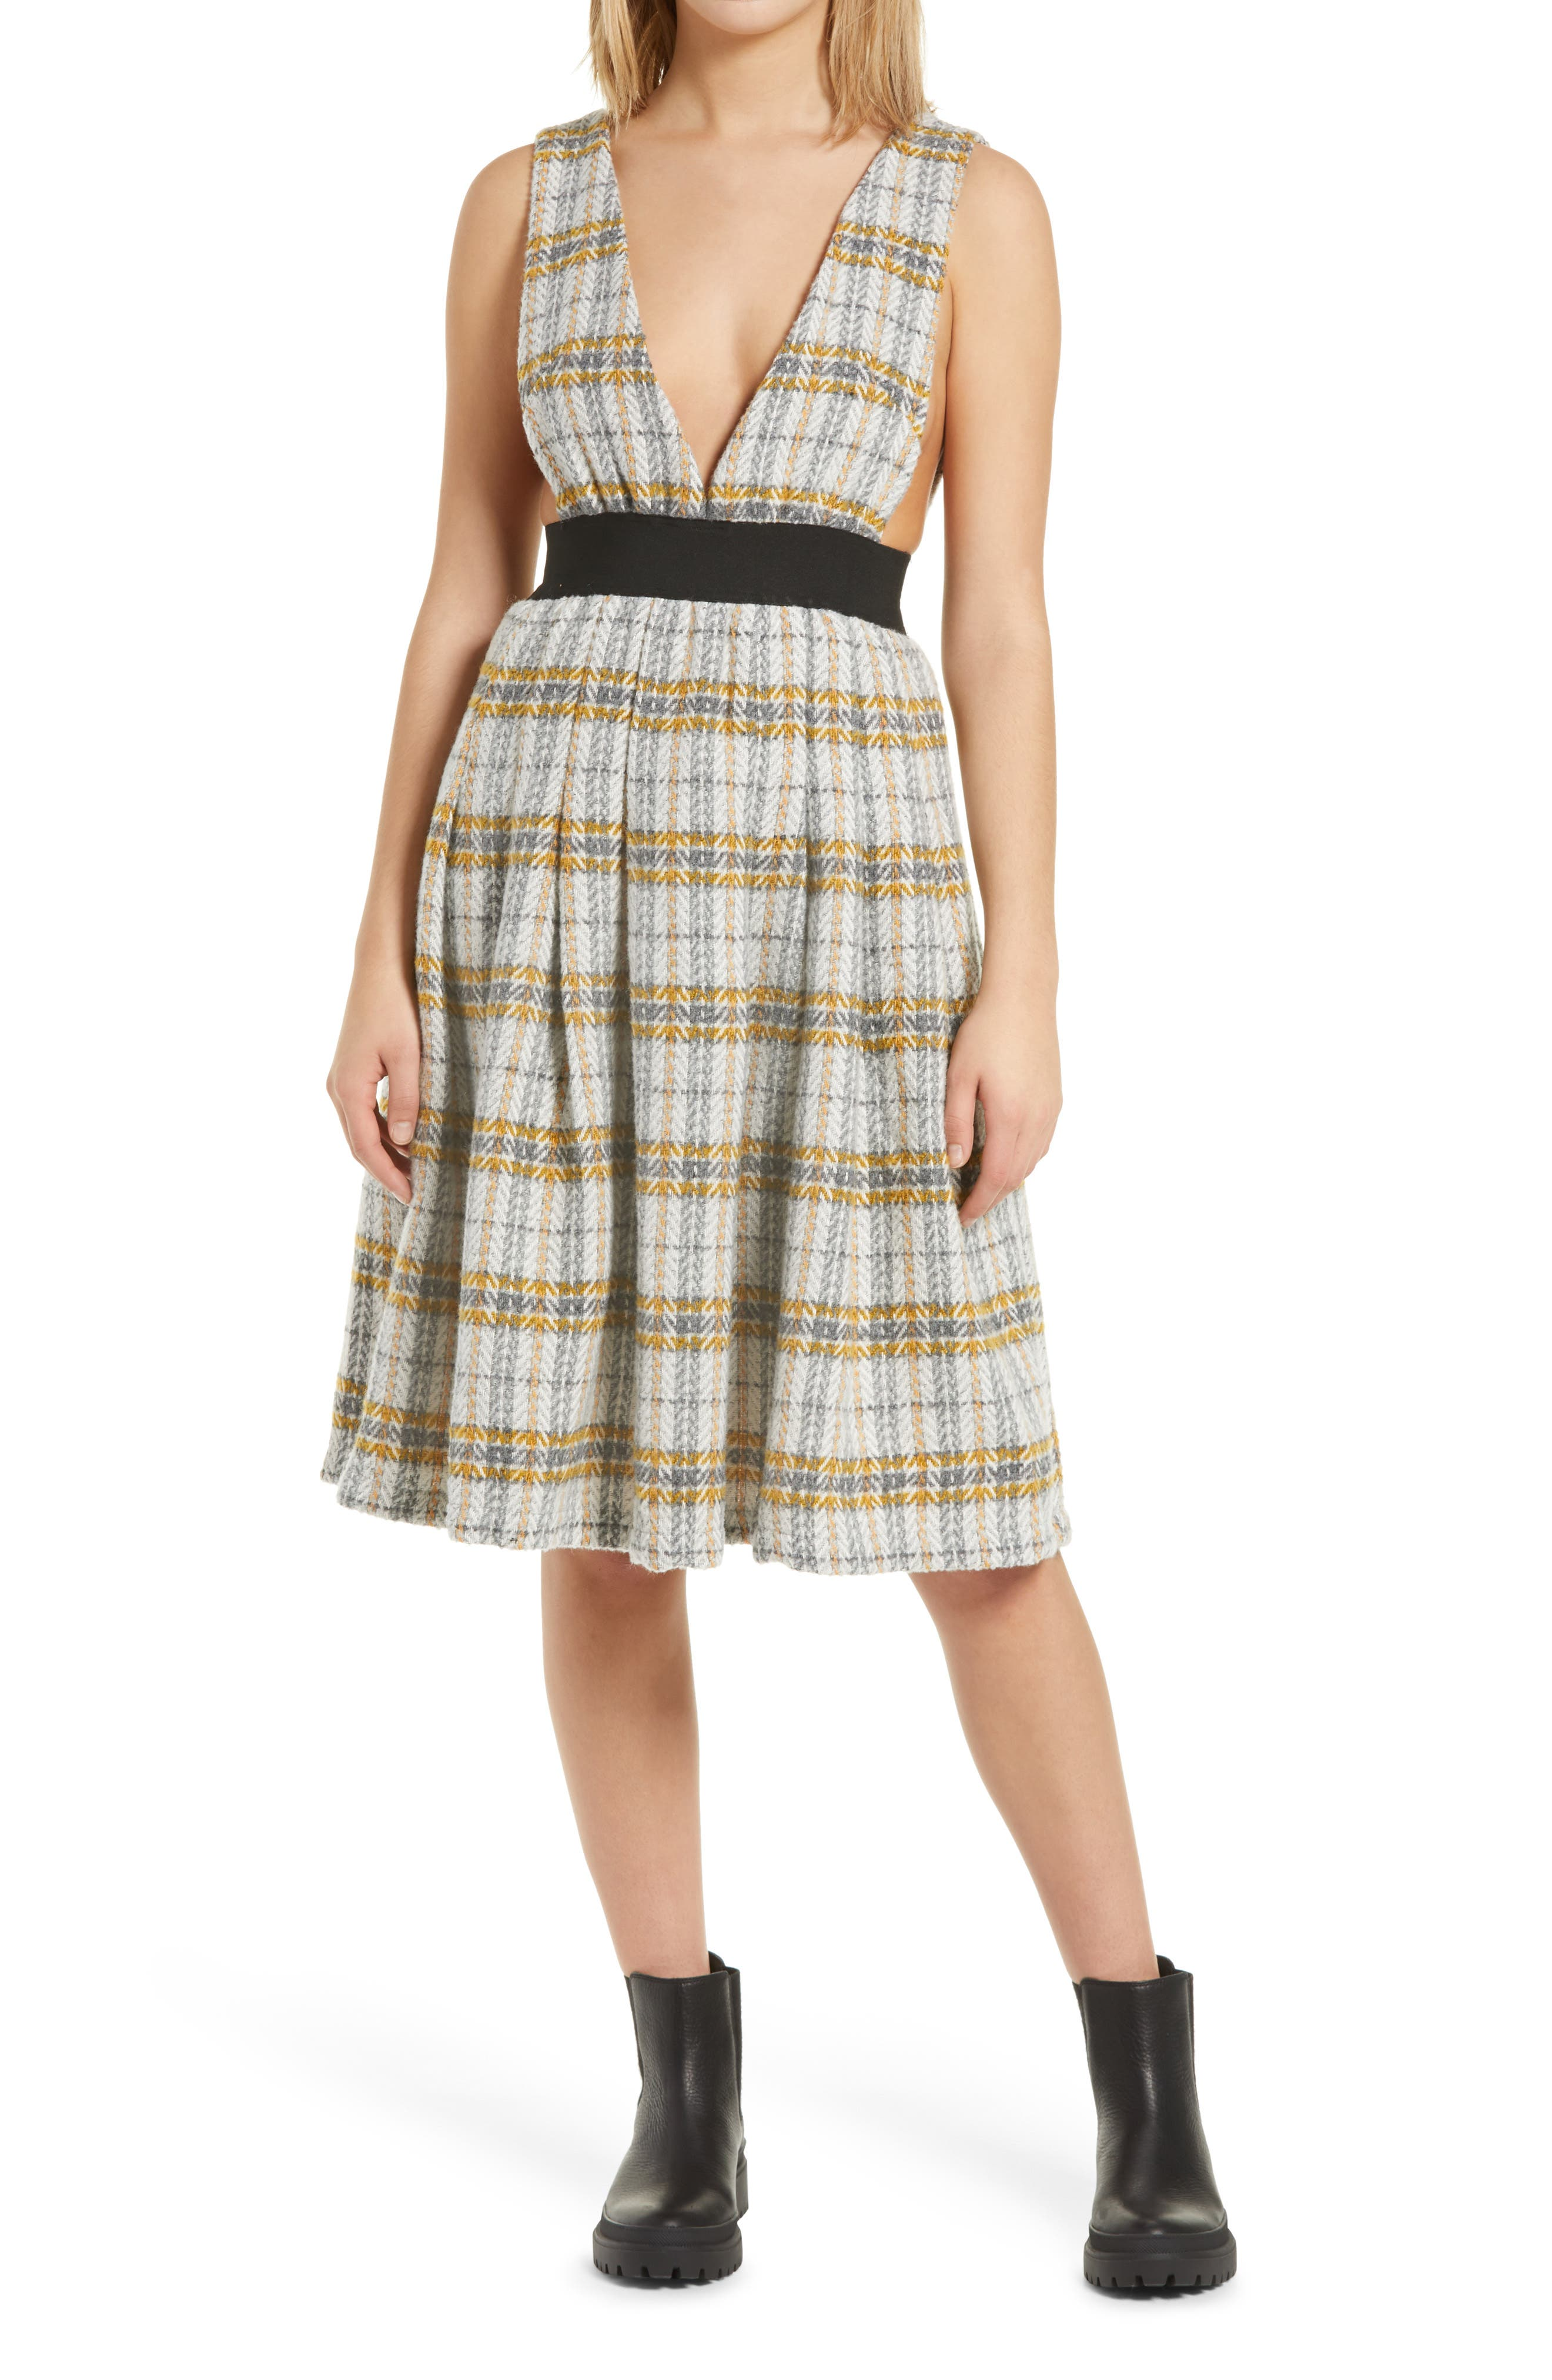 What Did Women Wear in the 1950s? 1950s Fashion Guide Womens Amy Lynn Aurelia Plaid Pinafore Dress Size Small - Yellow $111.00 AT vintagedancer.com